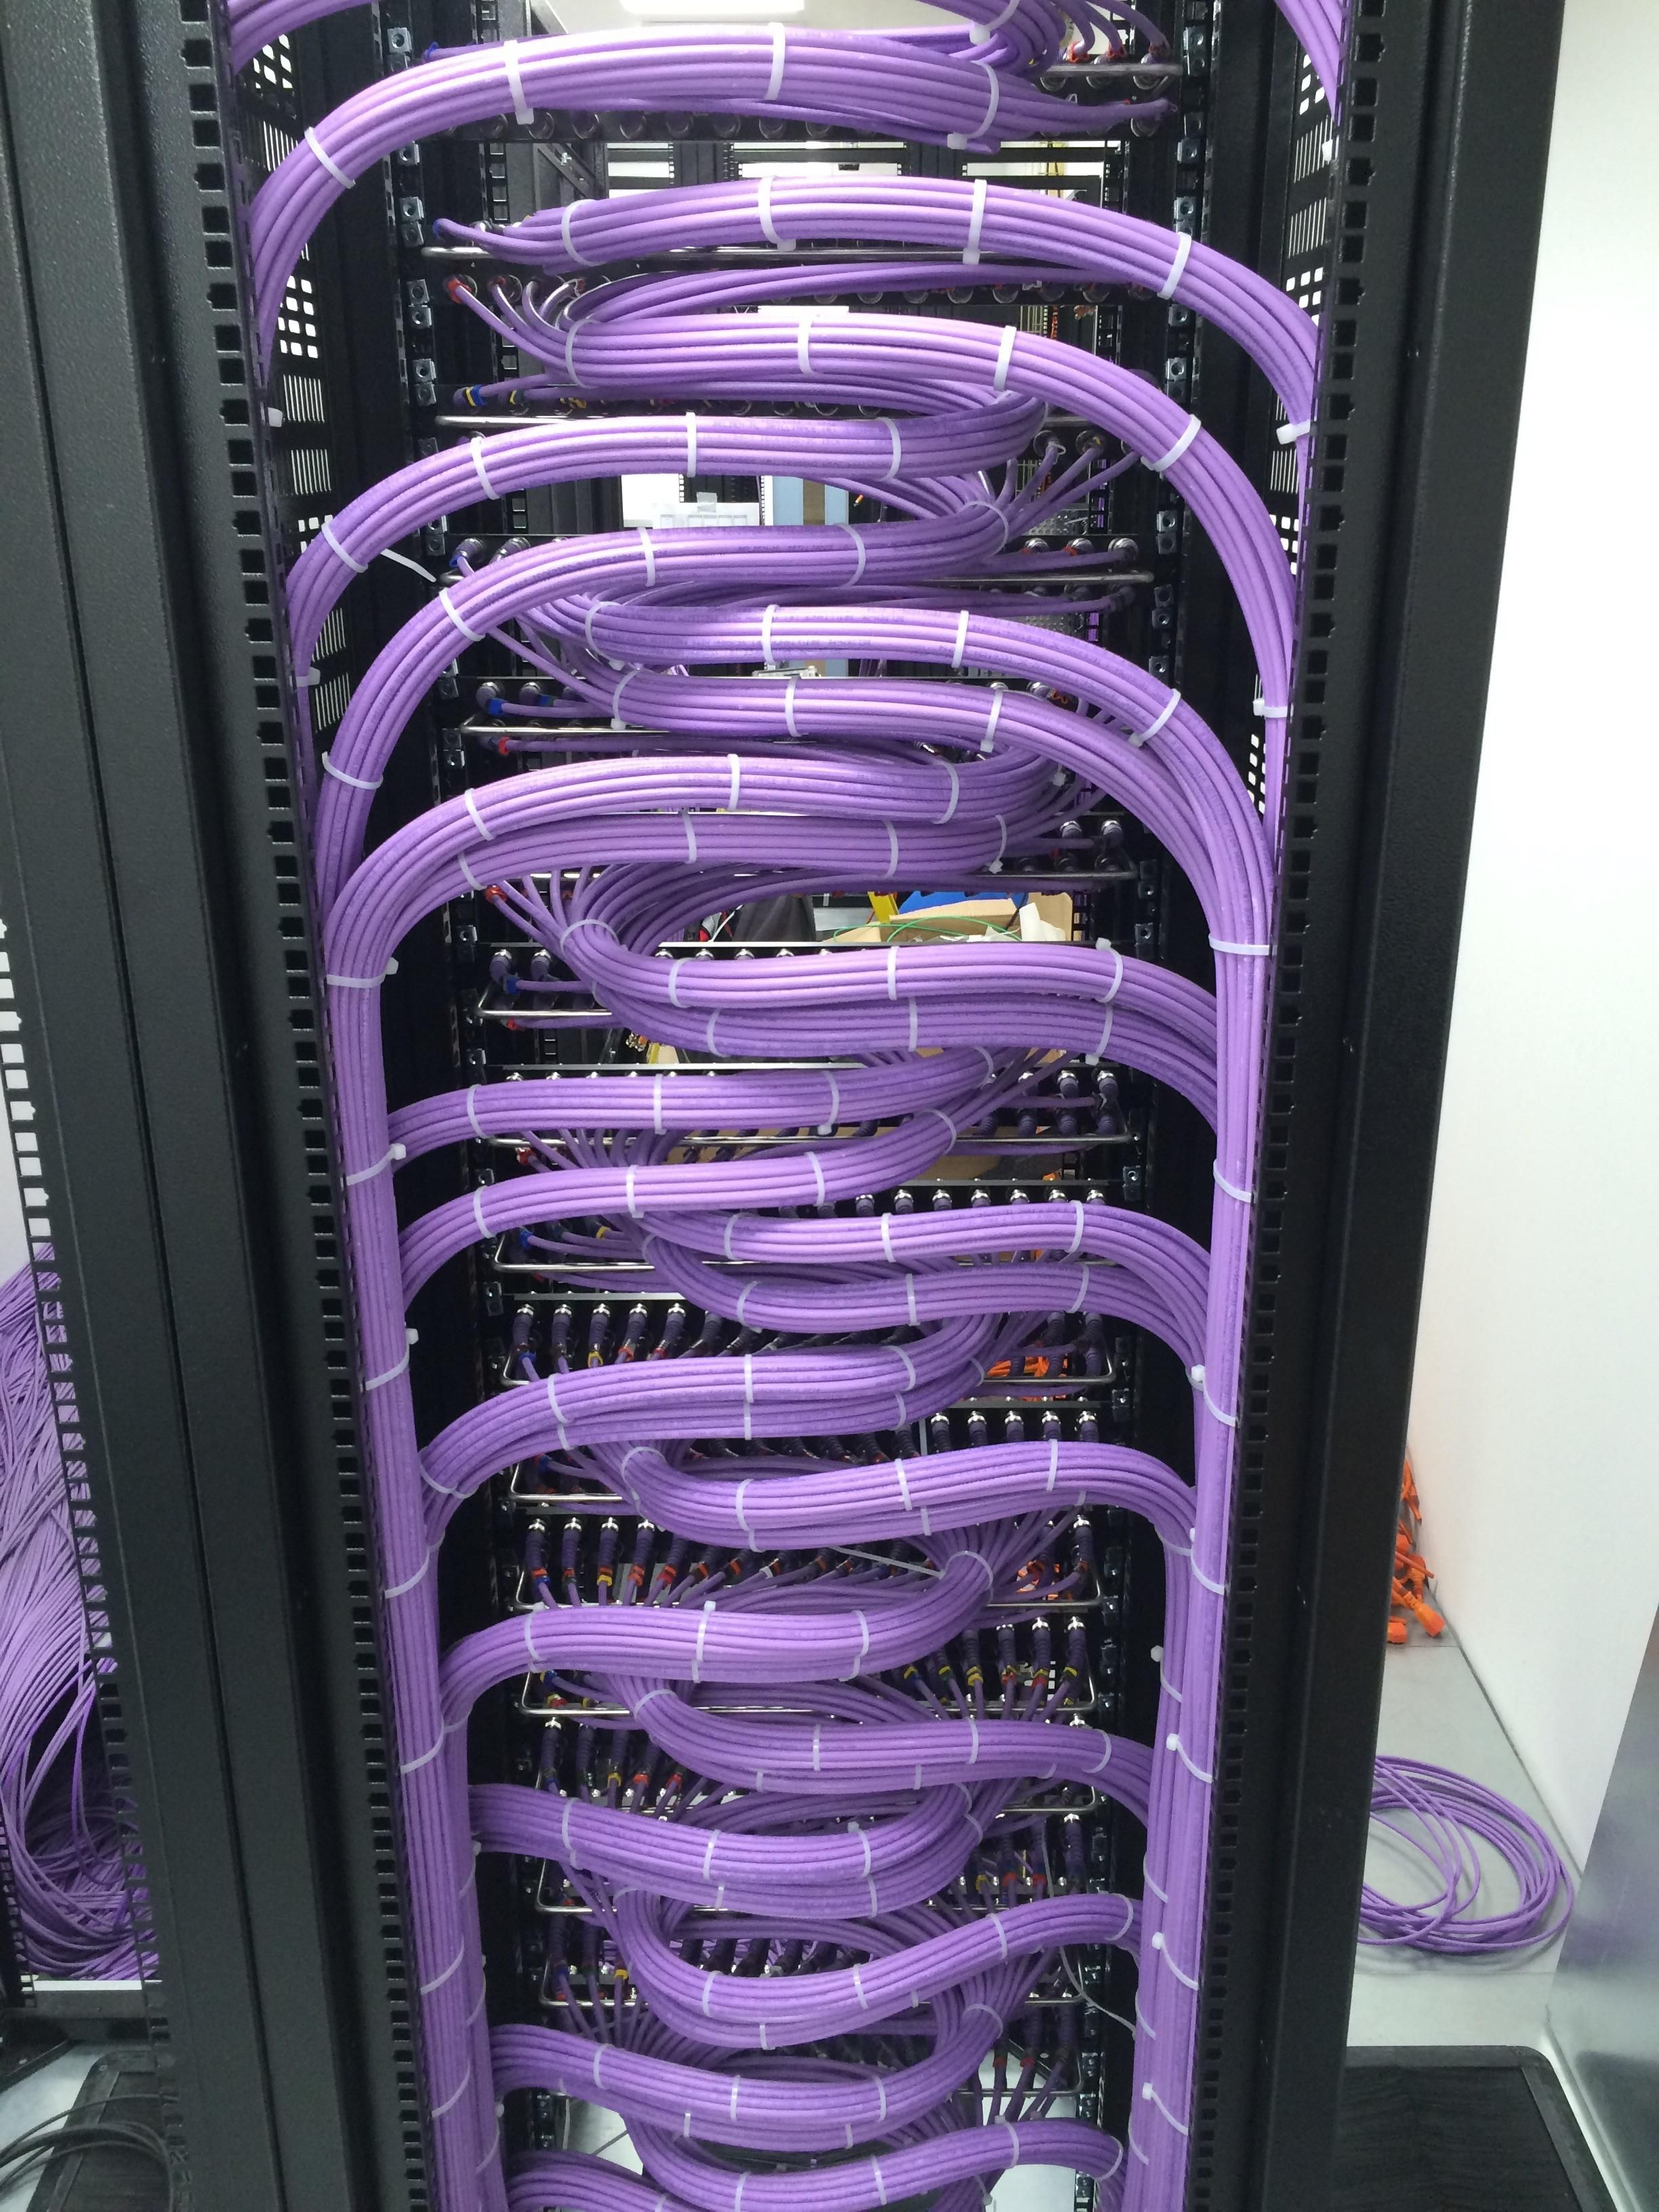 Telecommunication Room Design: Cable Management, Structured Cabling, Cable